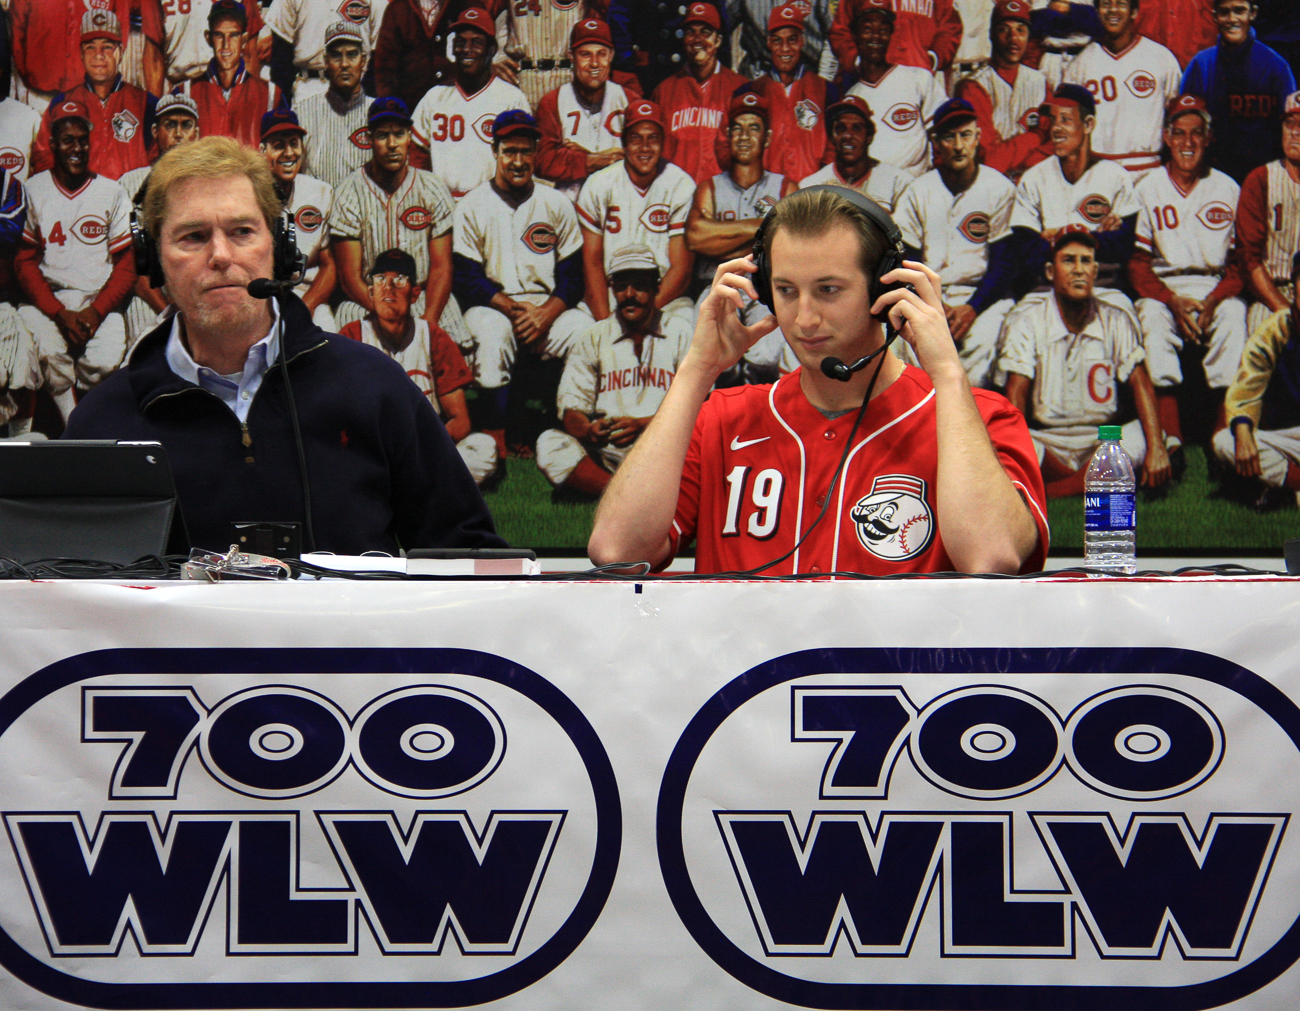 Ken Broo, local sportscaster (left)